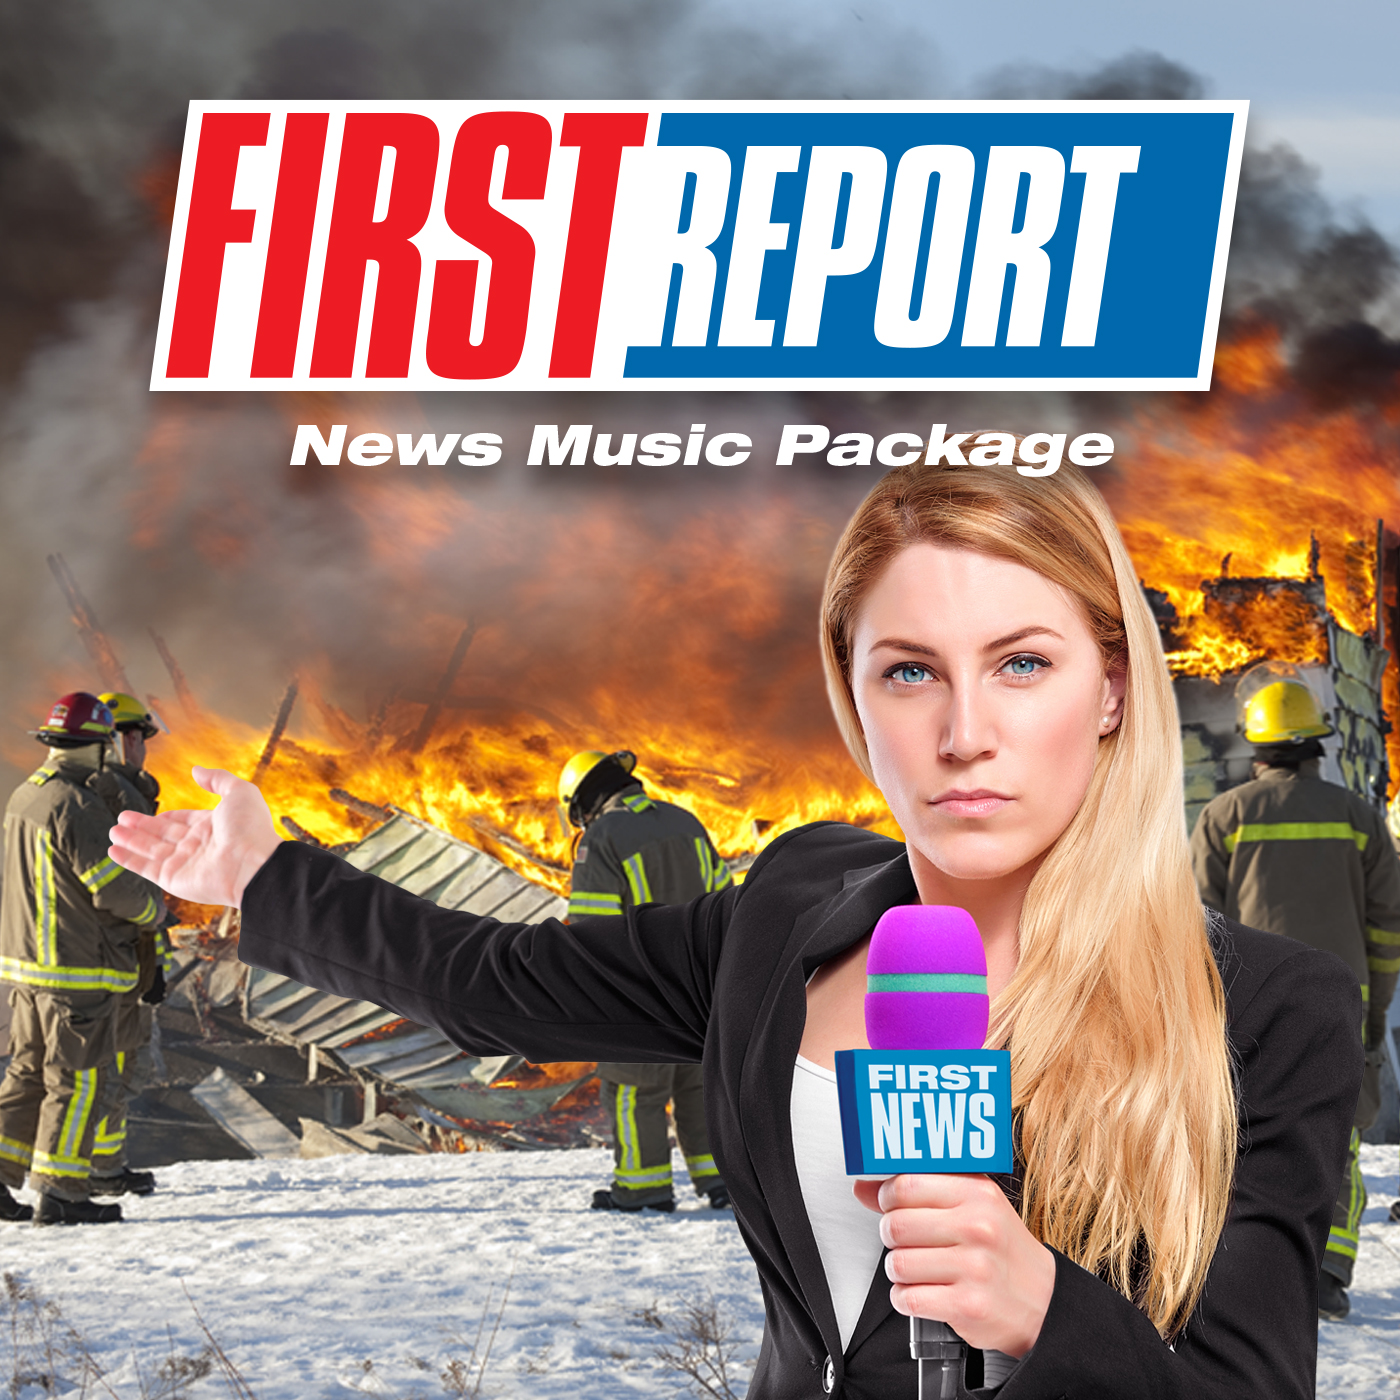 First Report News Music Package